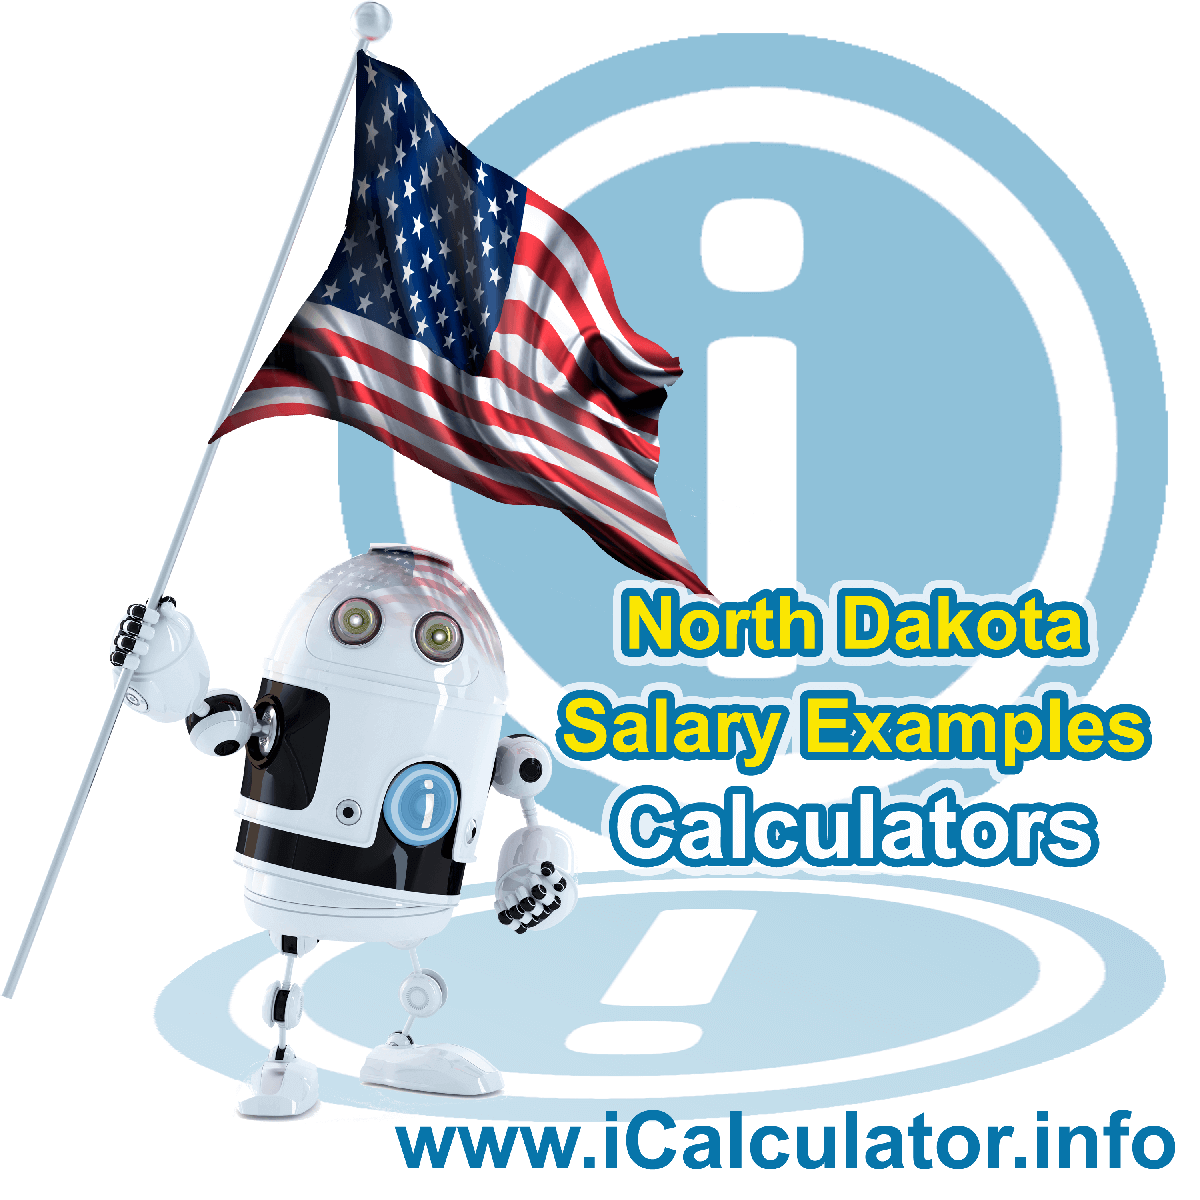 North Dakota Salary Example for $100,000.00 in 2020 | iCalculator | $100,000.00 salary example for employee and employer paying North Dakota State tincome taxes. Detailed salary after tax calculation including North Dakota State Tax, Federal State Tax, Medicare Deductions, Social Security, Capital Gains and other income tax and salary deductions complete with supporting North Dakota state tax tables